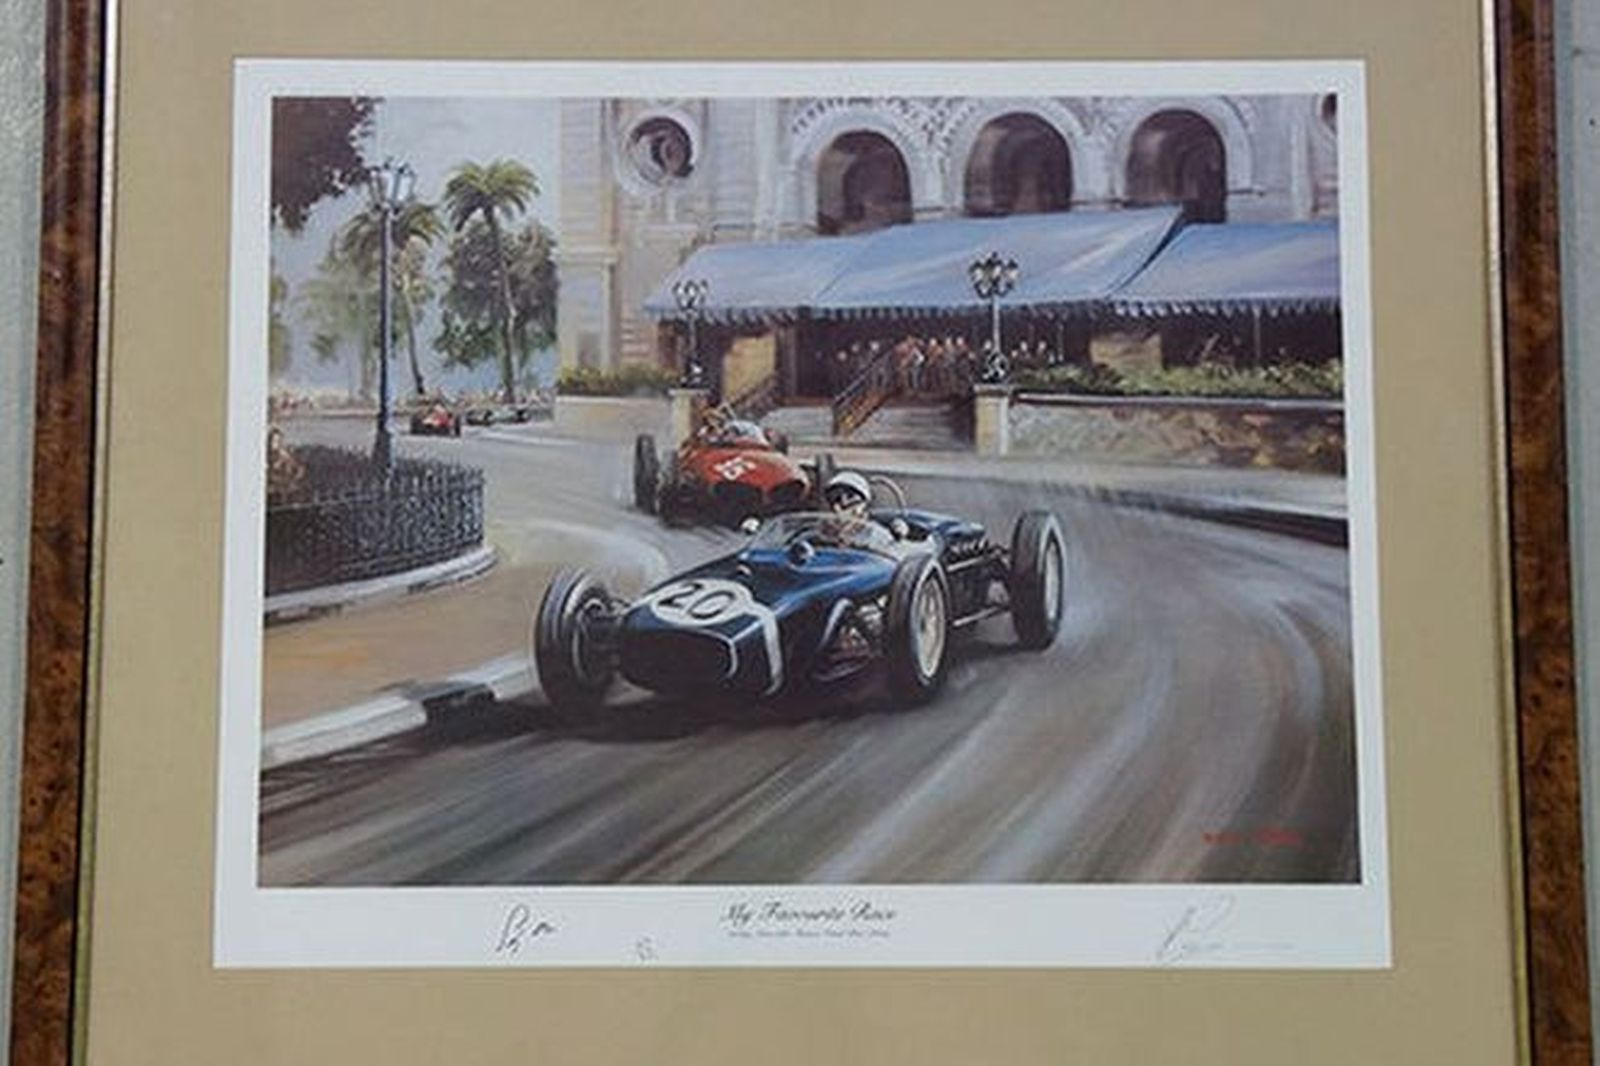 Framed Print - 'My Favourite Race' Stirling Moss 1961 Monaco Grand Prix - No: 47/850 (75 x 86cm)